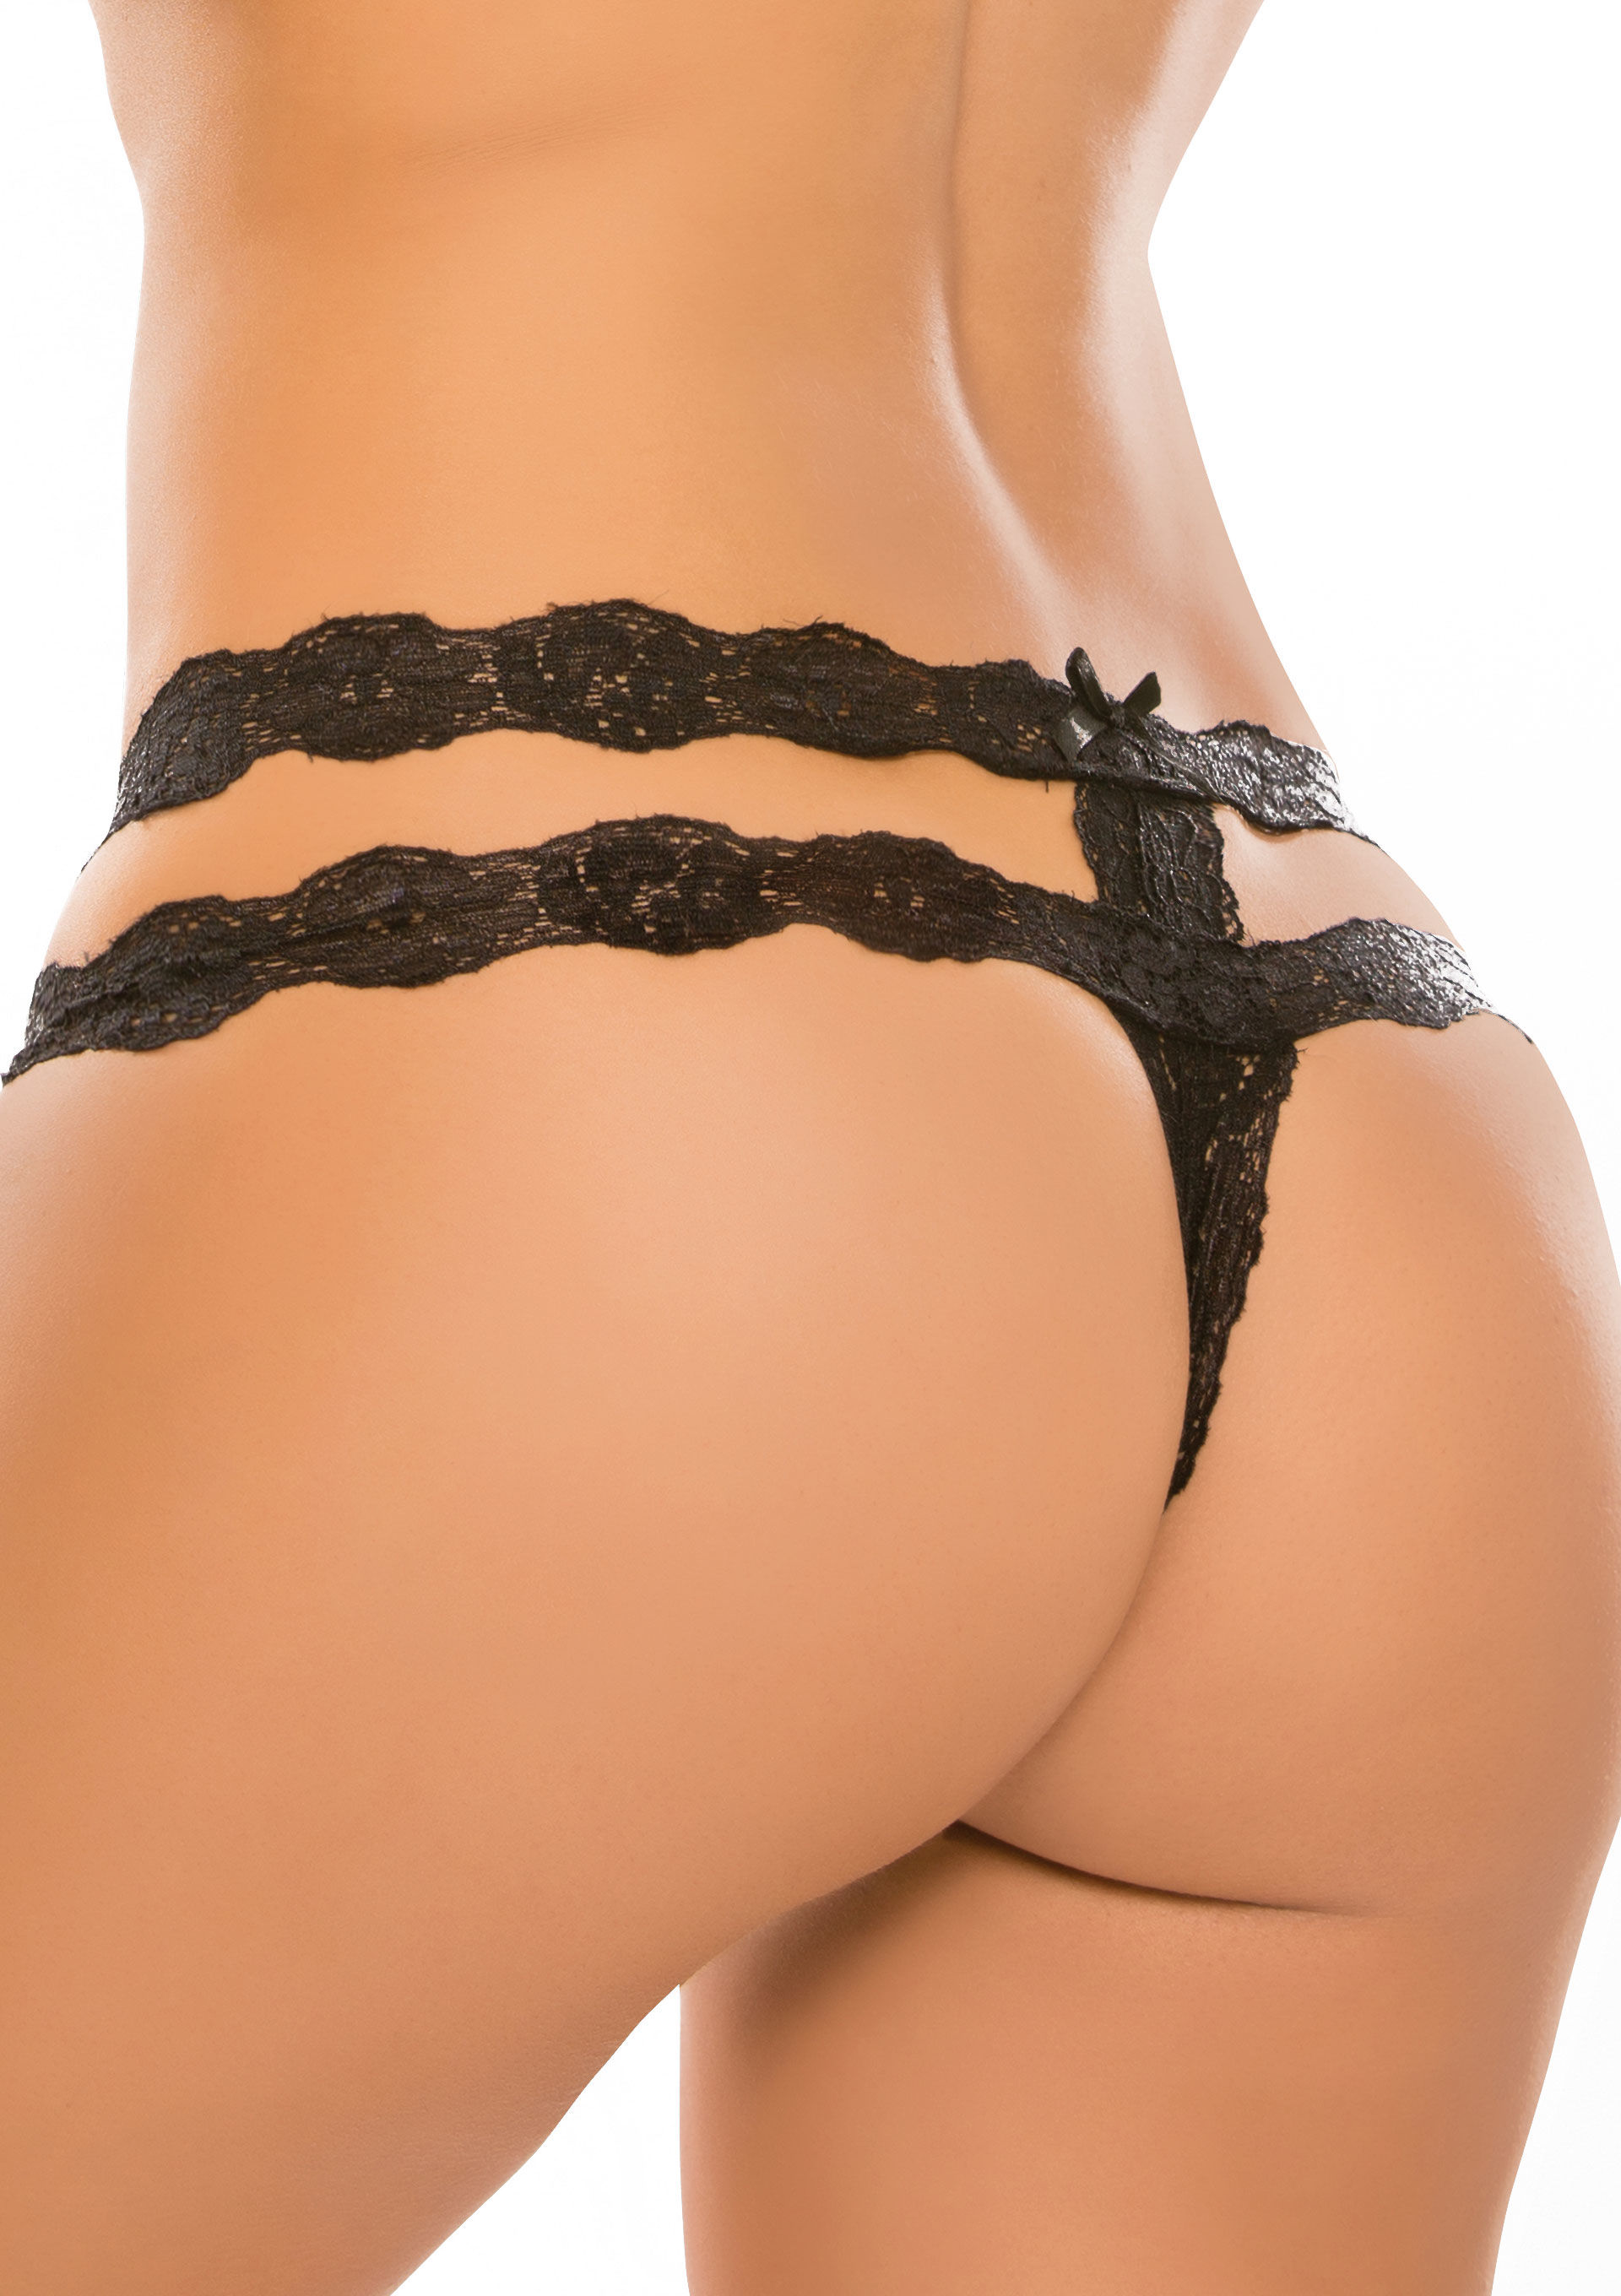 Allure Crotchless Rhapsody Panty Black